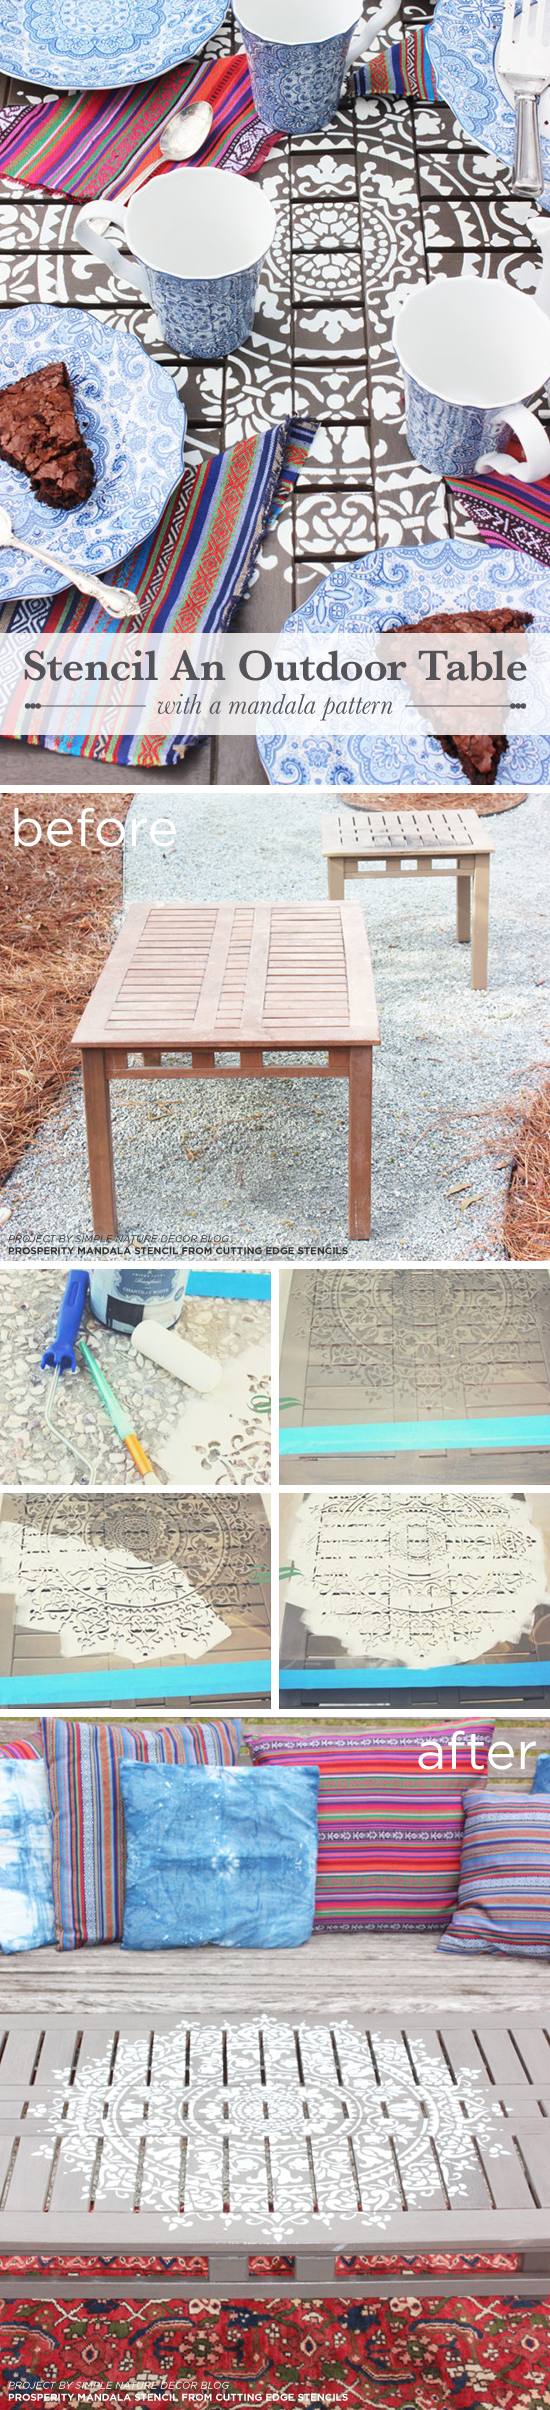 Cutting Edge Stencils shares a DIY stenciled outdoor wooden table using the Prosperity Mandala Stencil. http://www.cuttingedgestencils.com/prosperity-mandala-stencil-yoga-mandala-stencils-designs.html